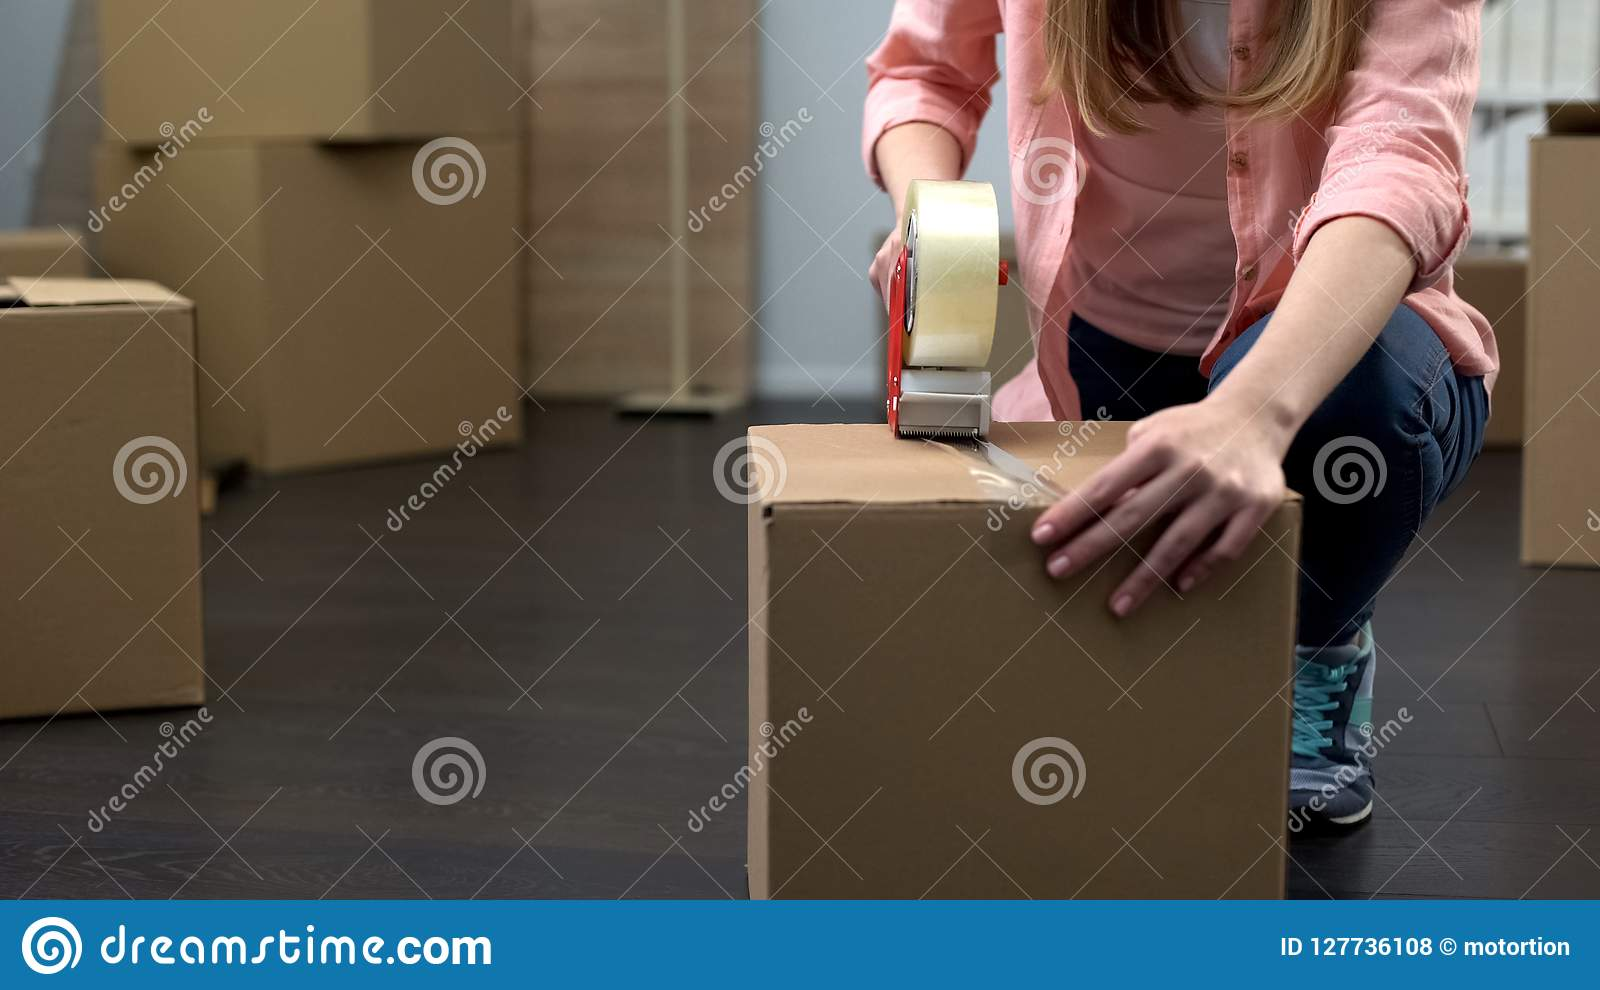 Office employee packing equipment and stuff for removal, business expansion